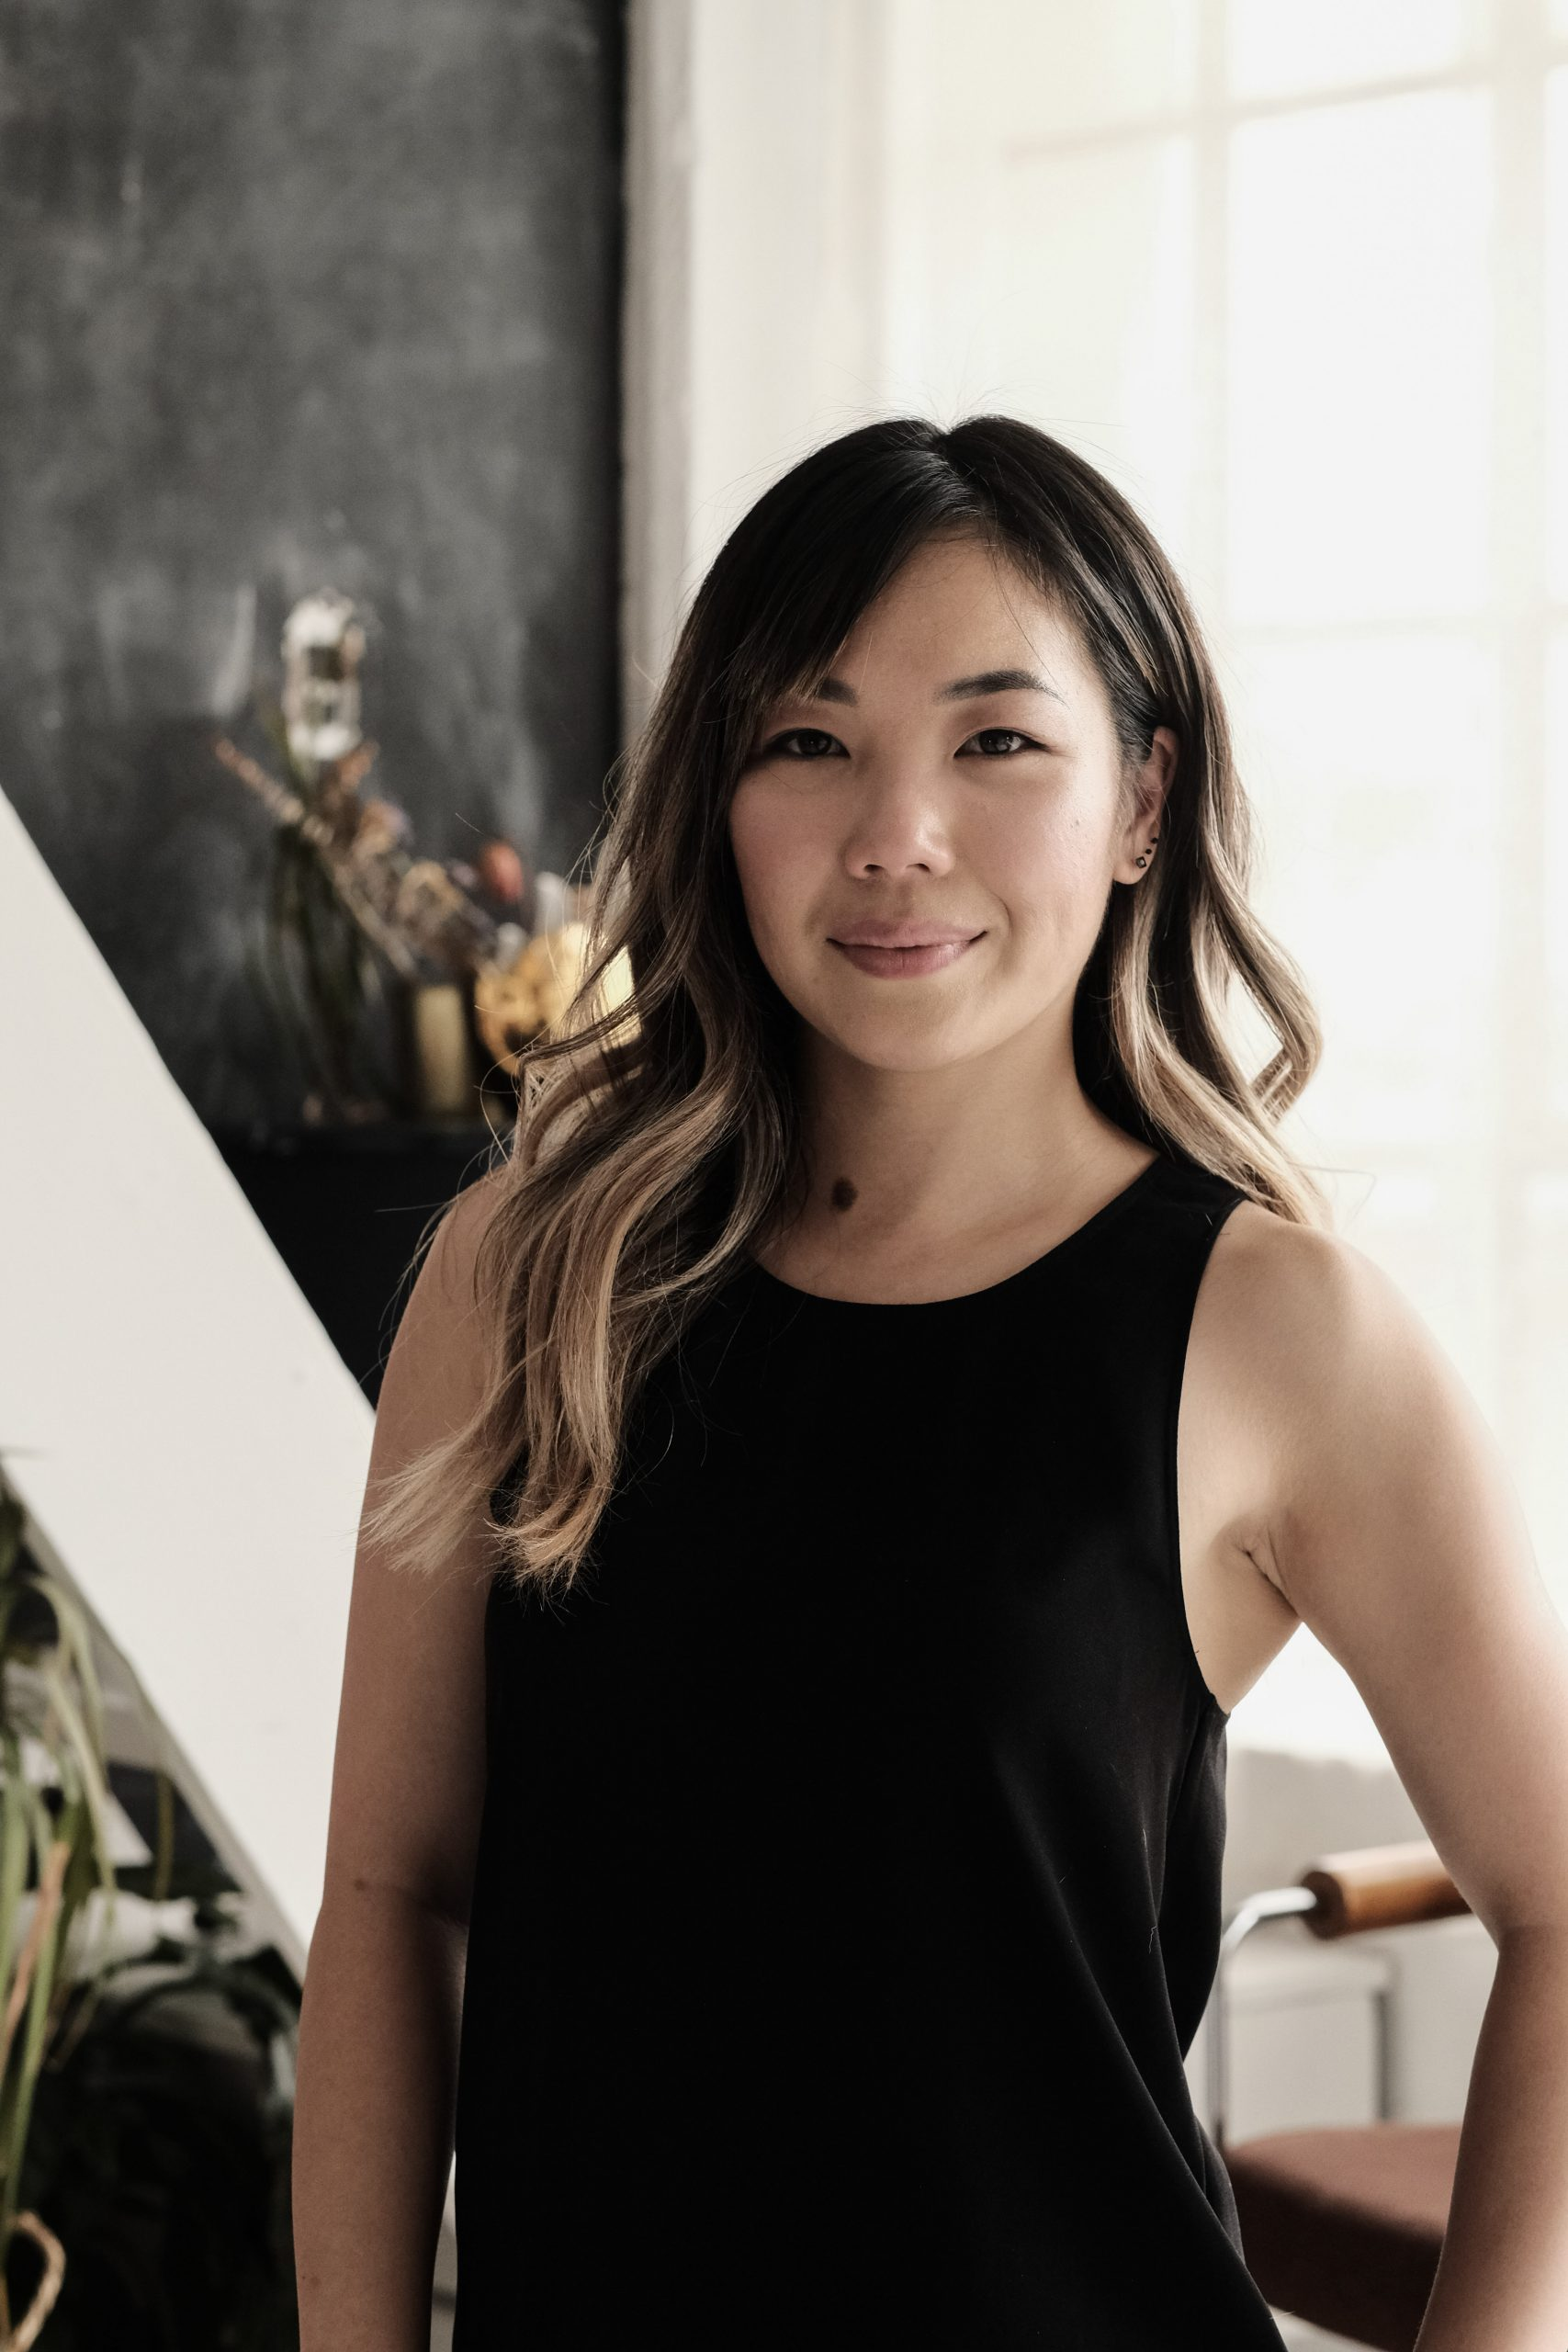 Jasmin Yeung, Founder and Creative Director of VybE Dance Company